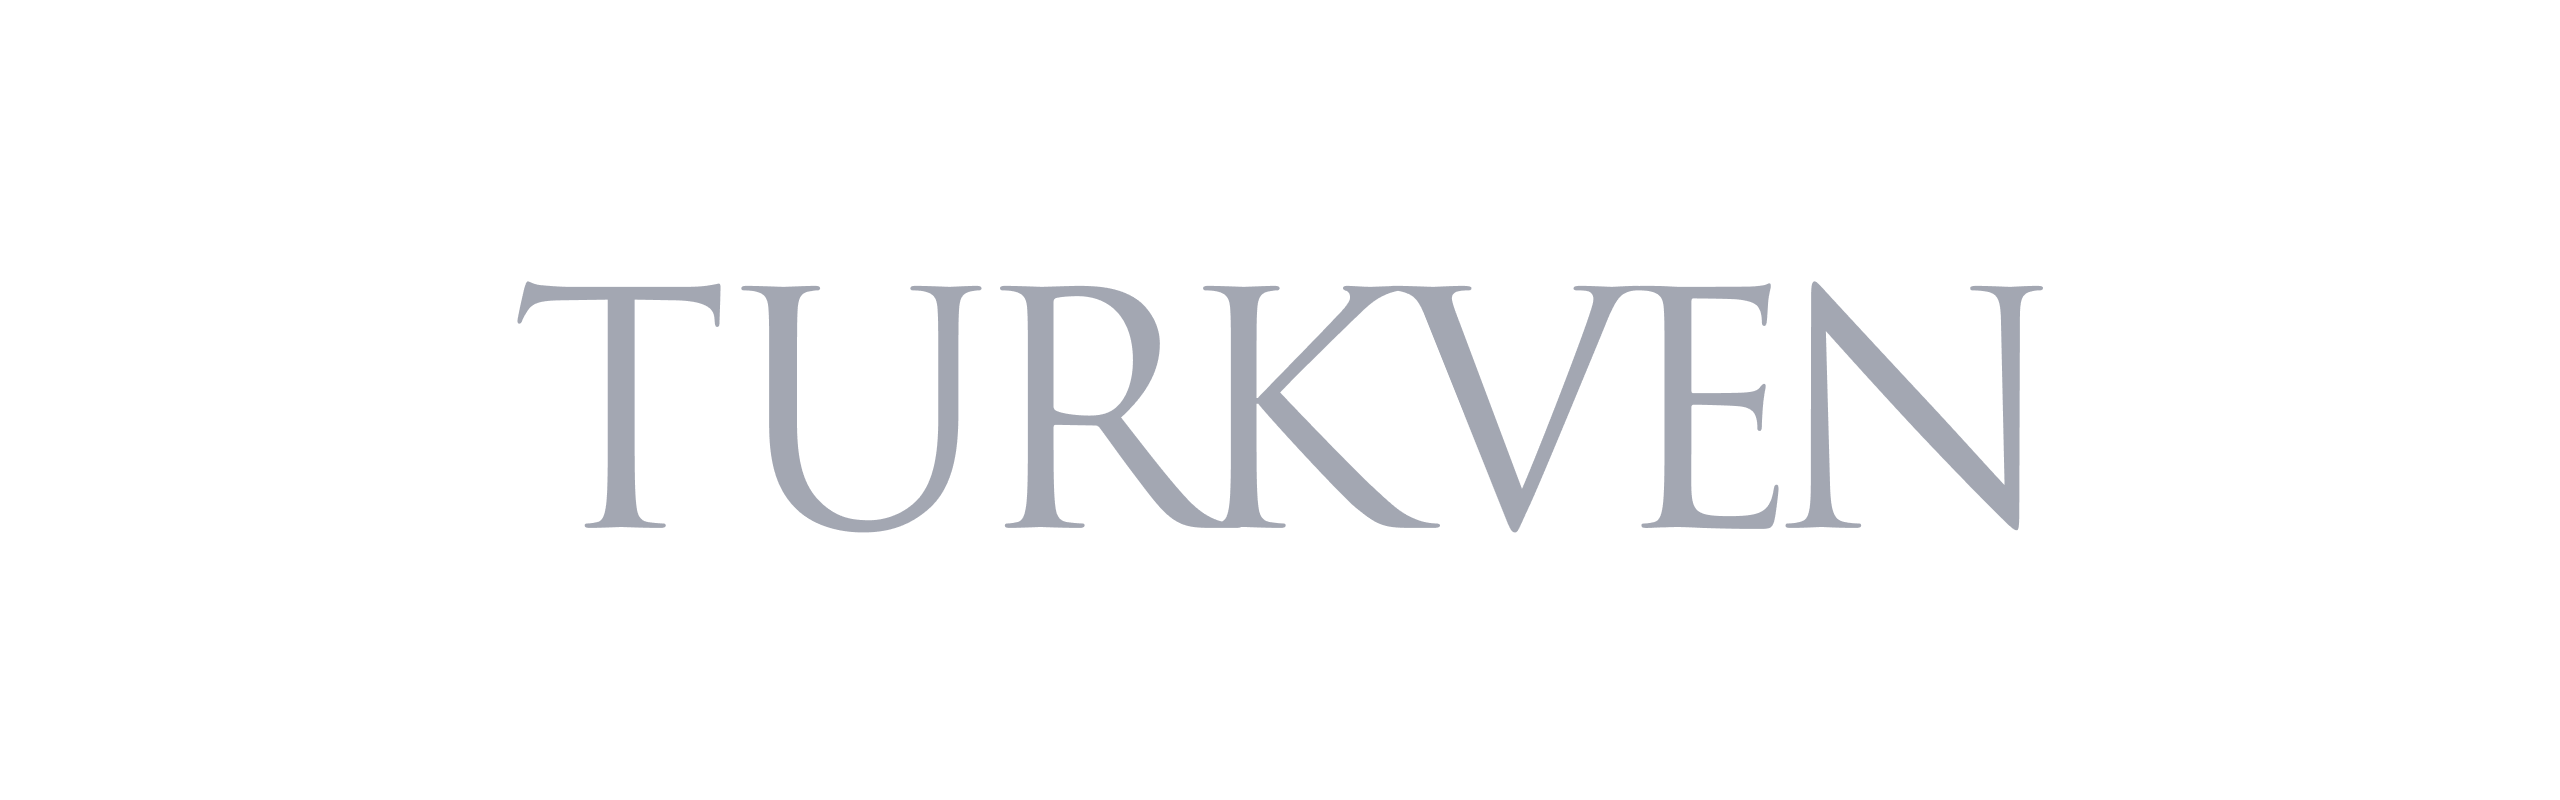 Technology & product due diligence | Code & Co. advises TURKVEN (logo shown)